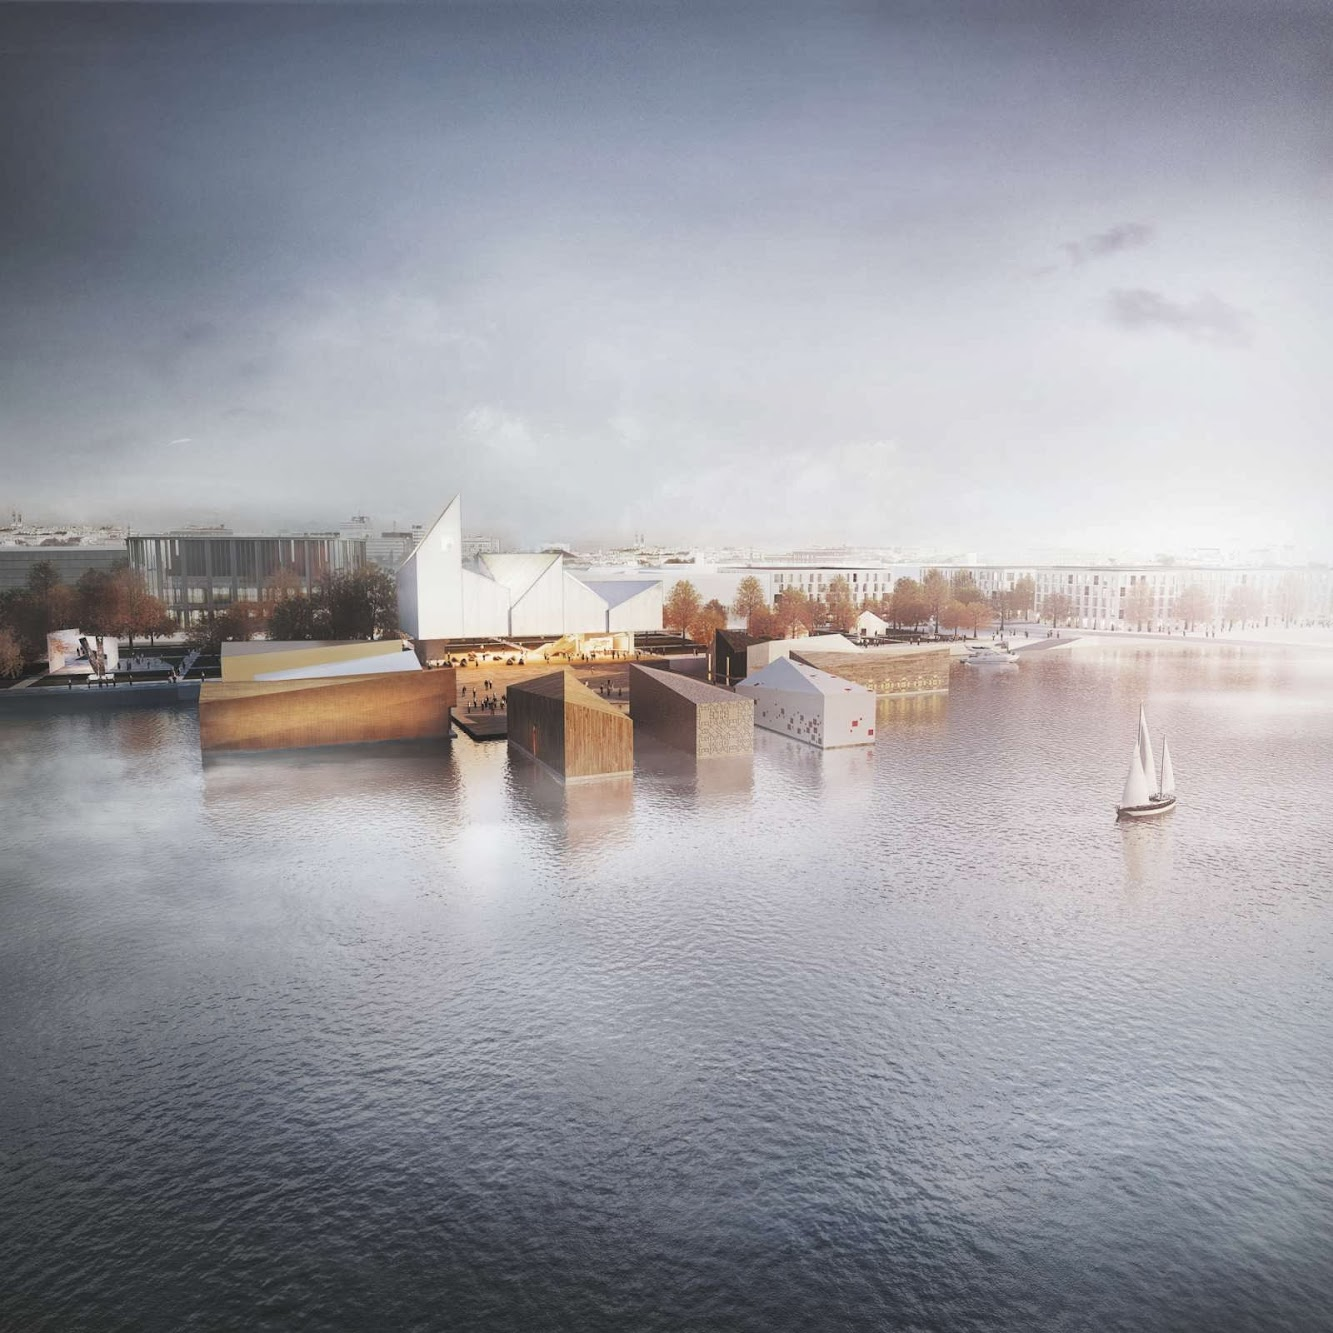 Pärnu, Pärnumaa, Estonia: Wxca Wins Baltic Sea Art Park Competition